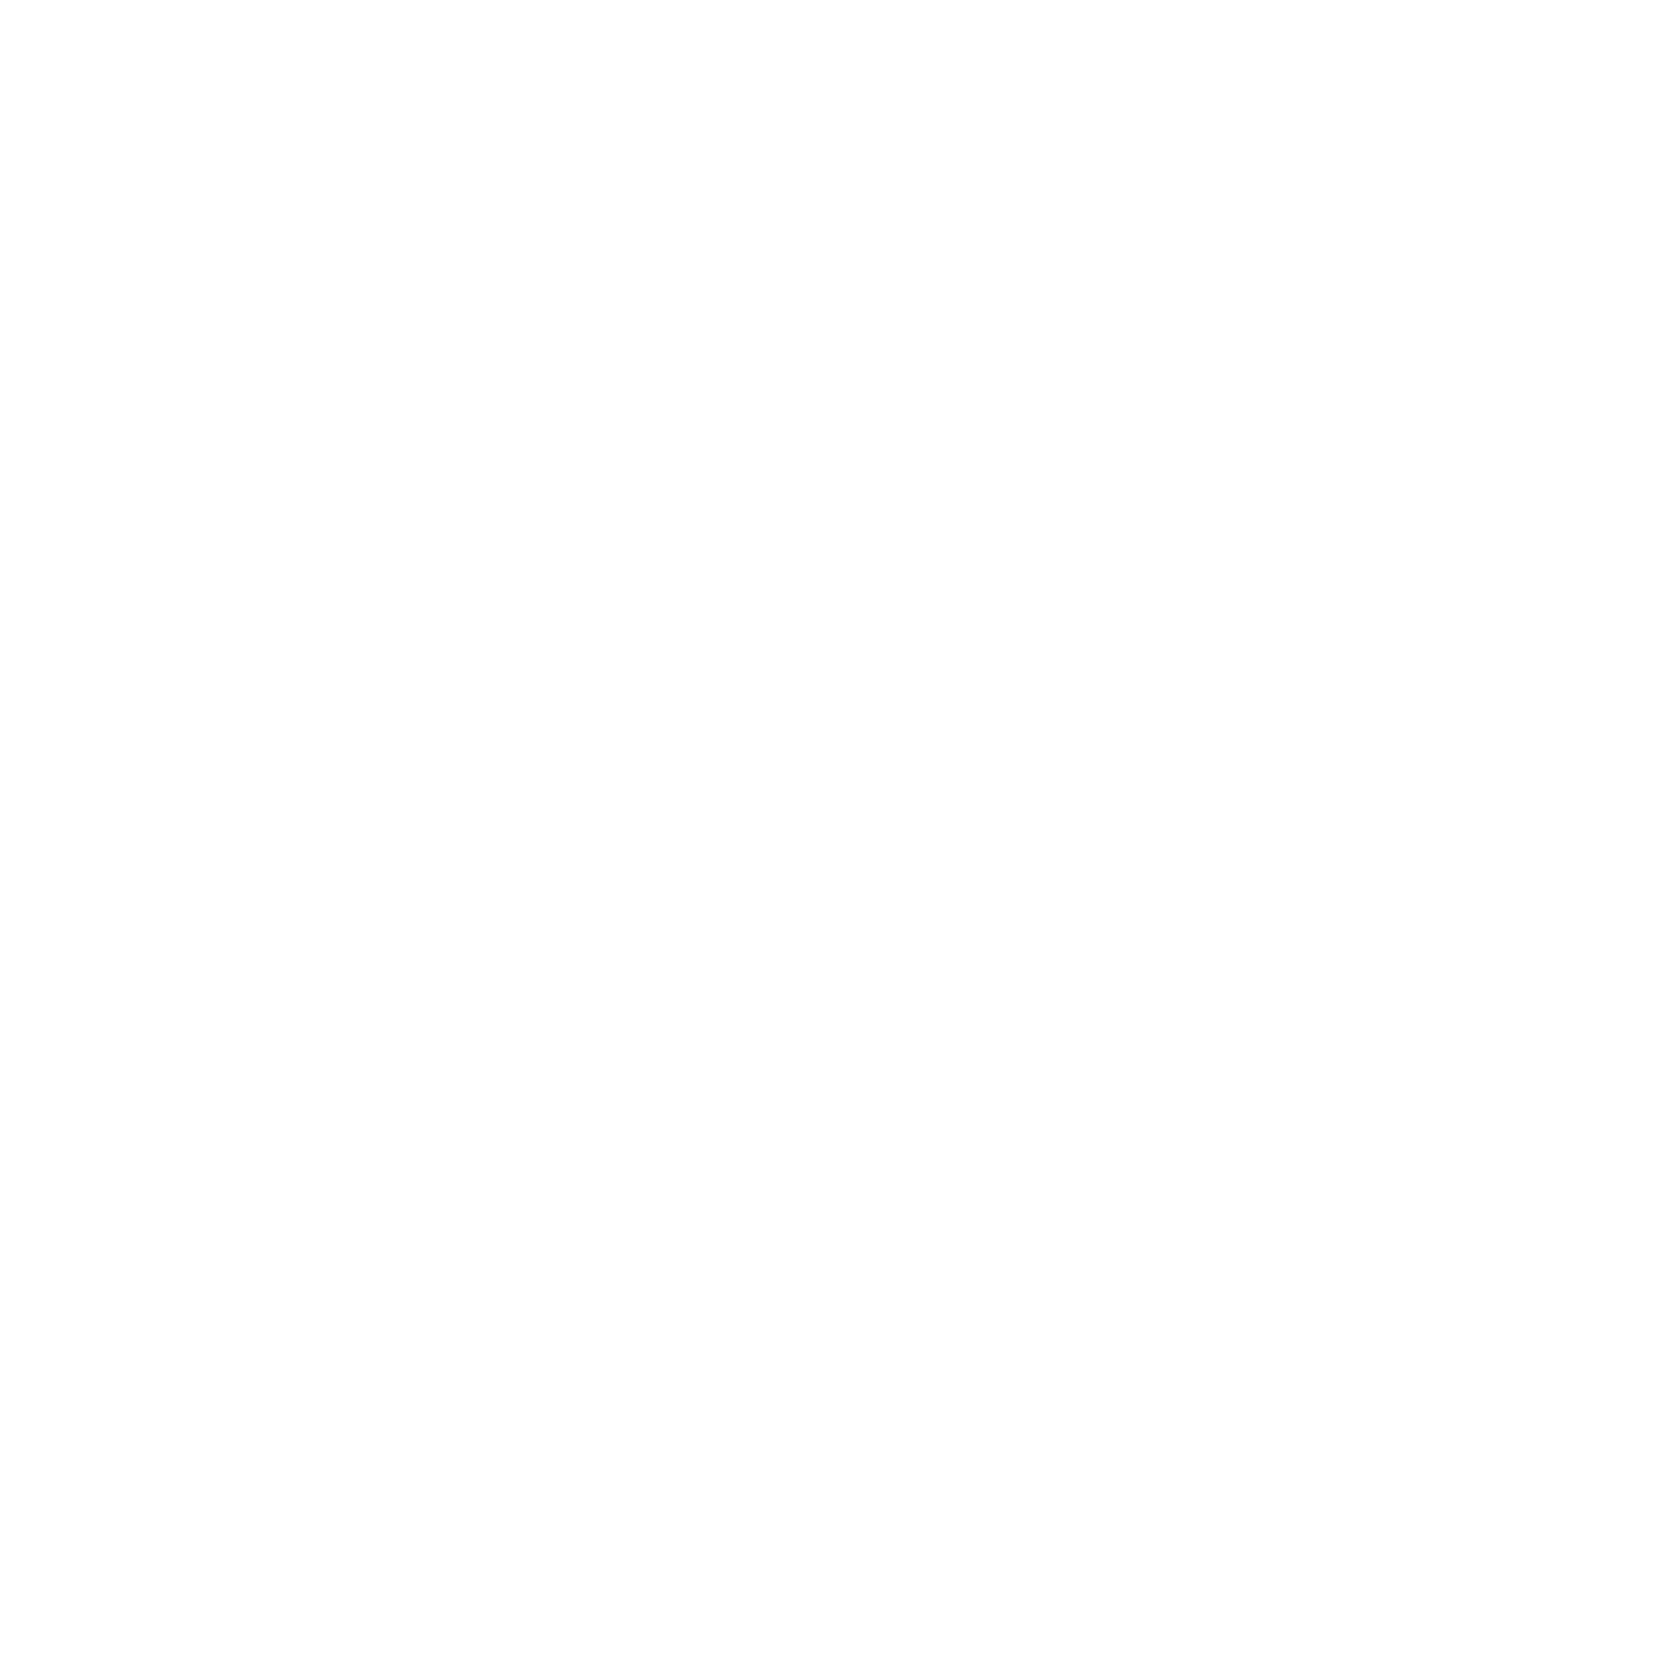 Churchfields Junior School logo portrait white